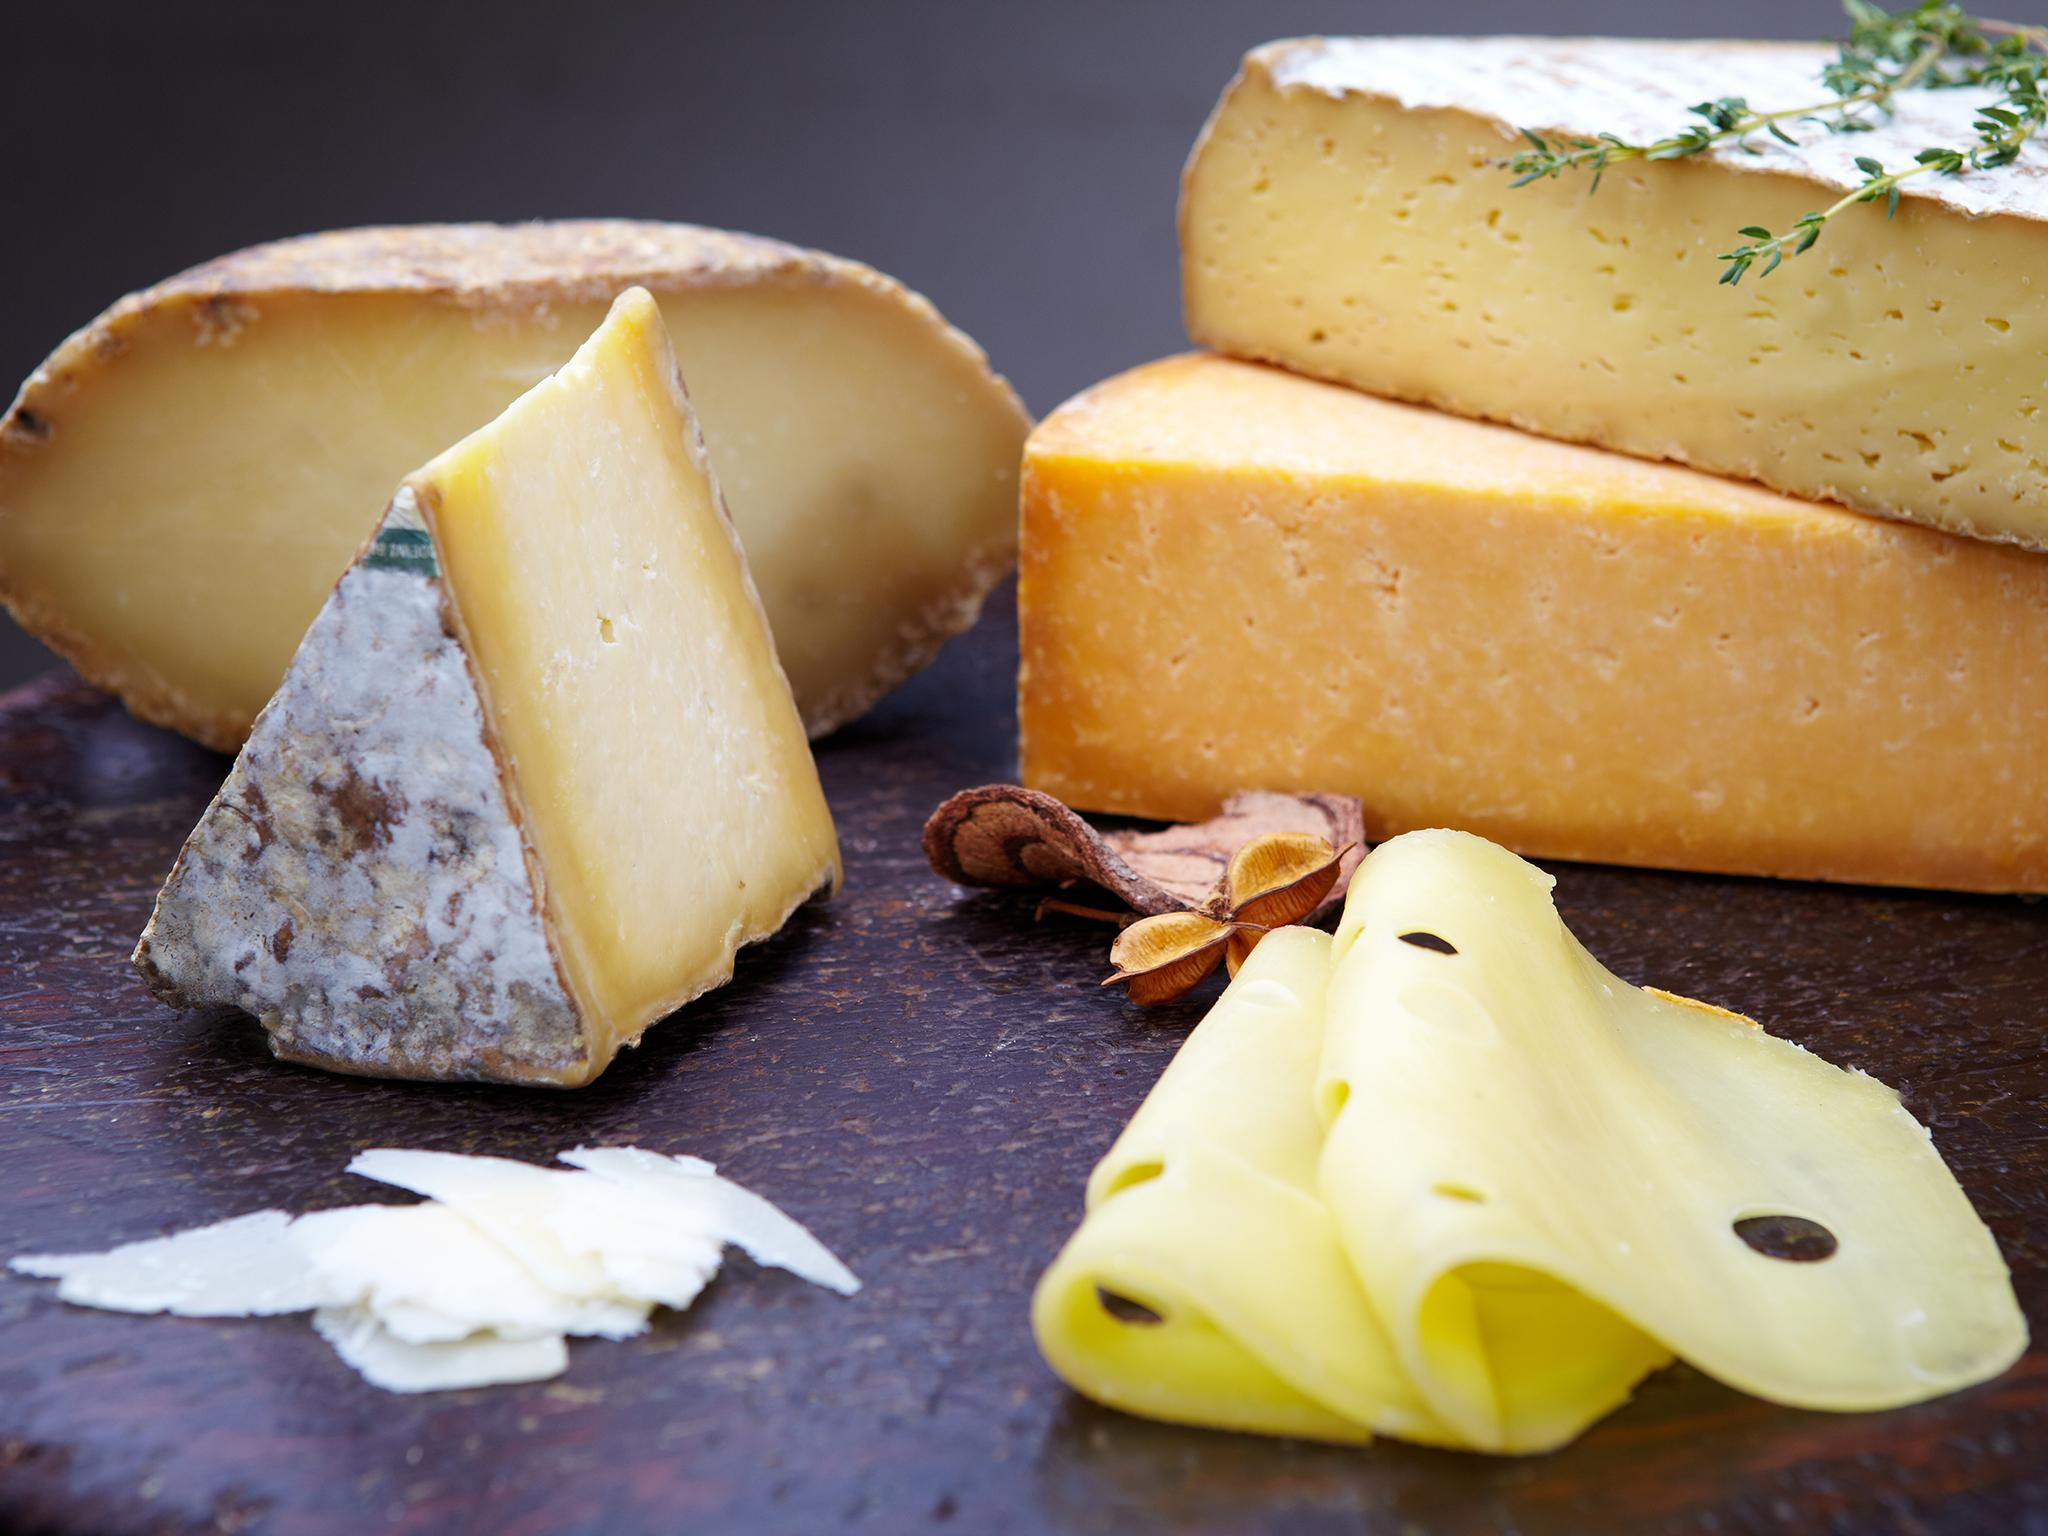 The making of a cheese from Wisconsin that has been named the best in the world